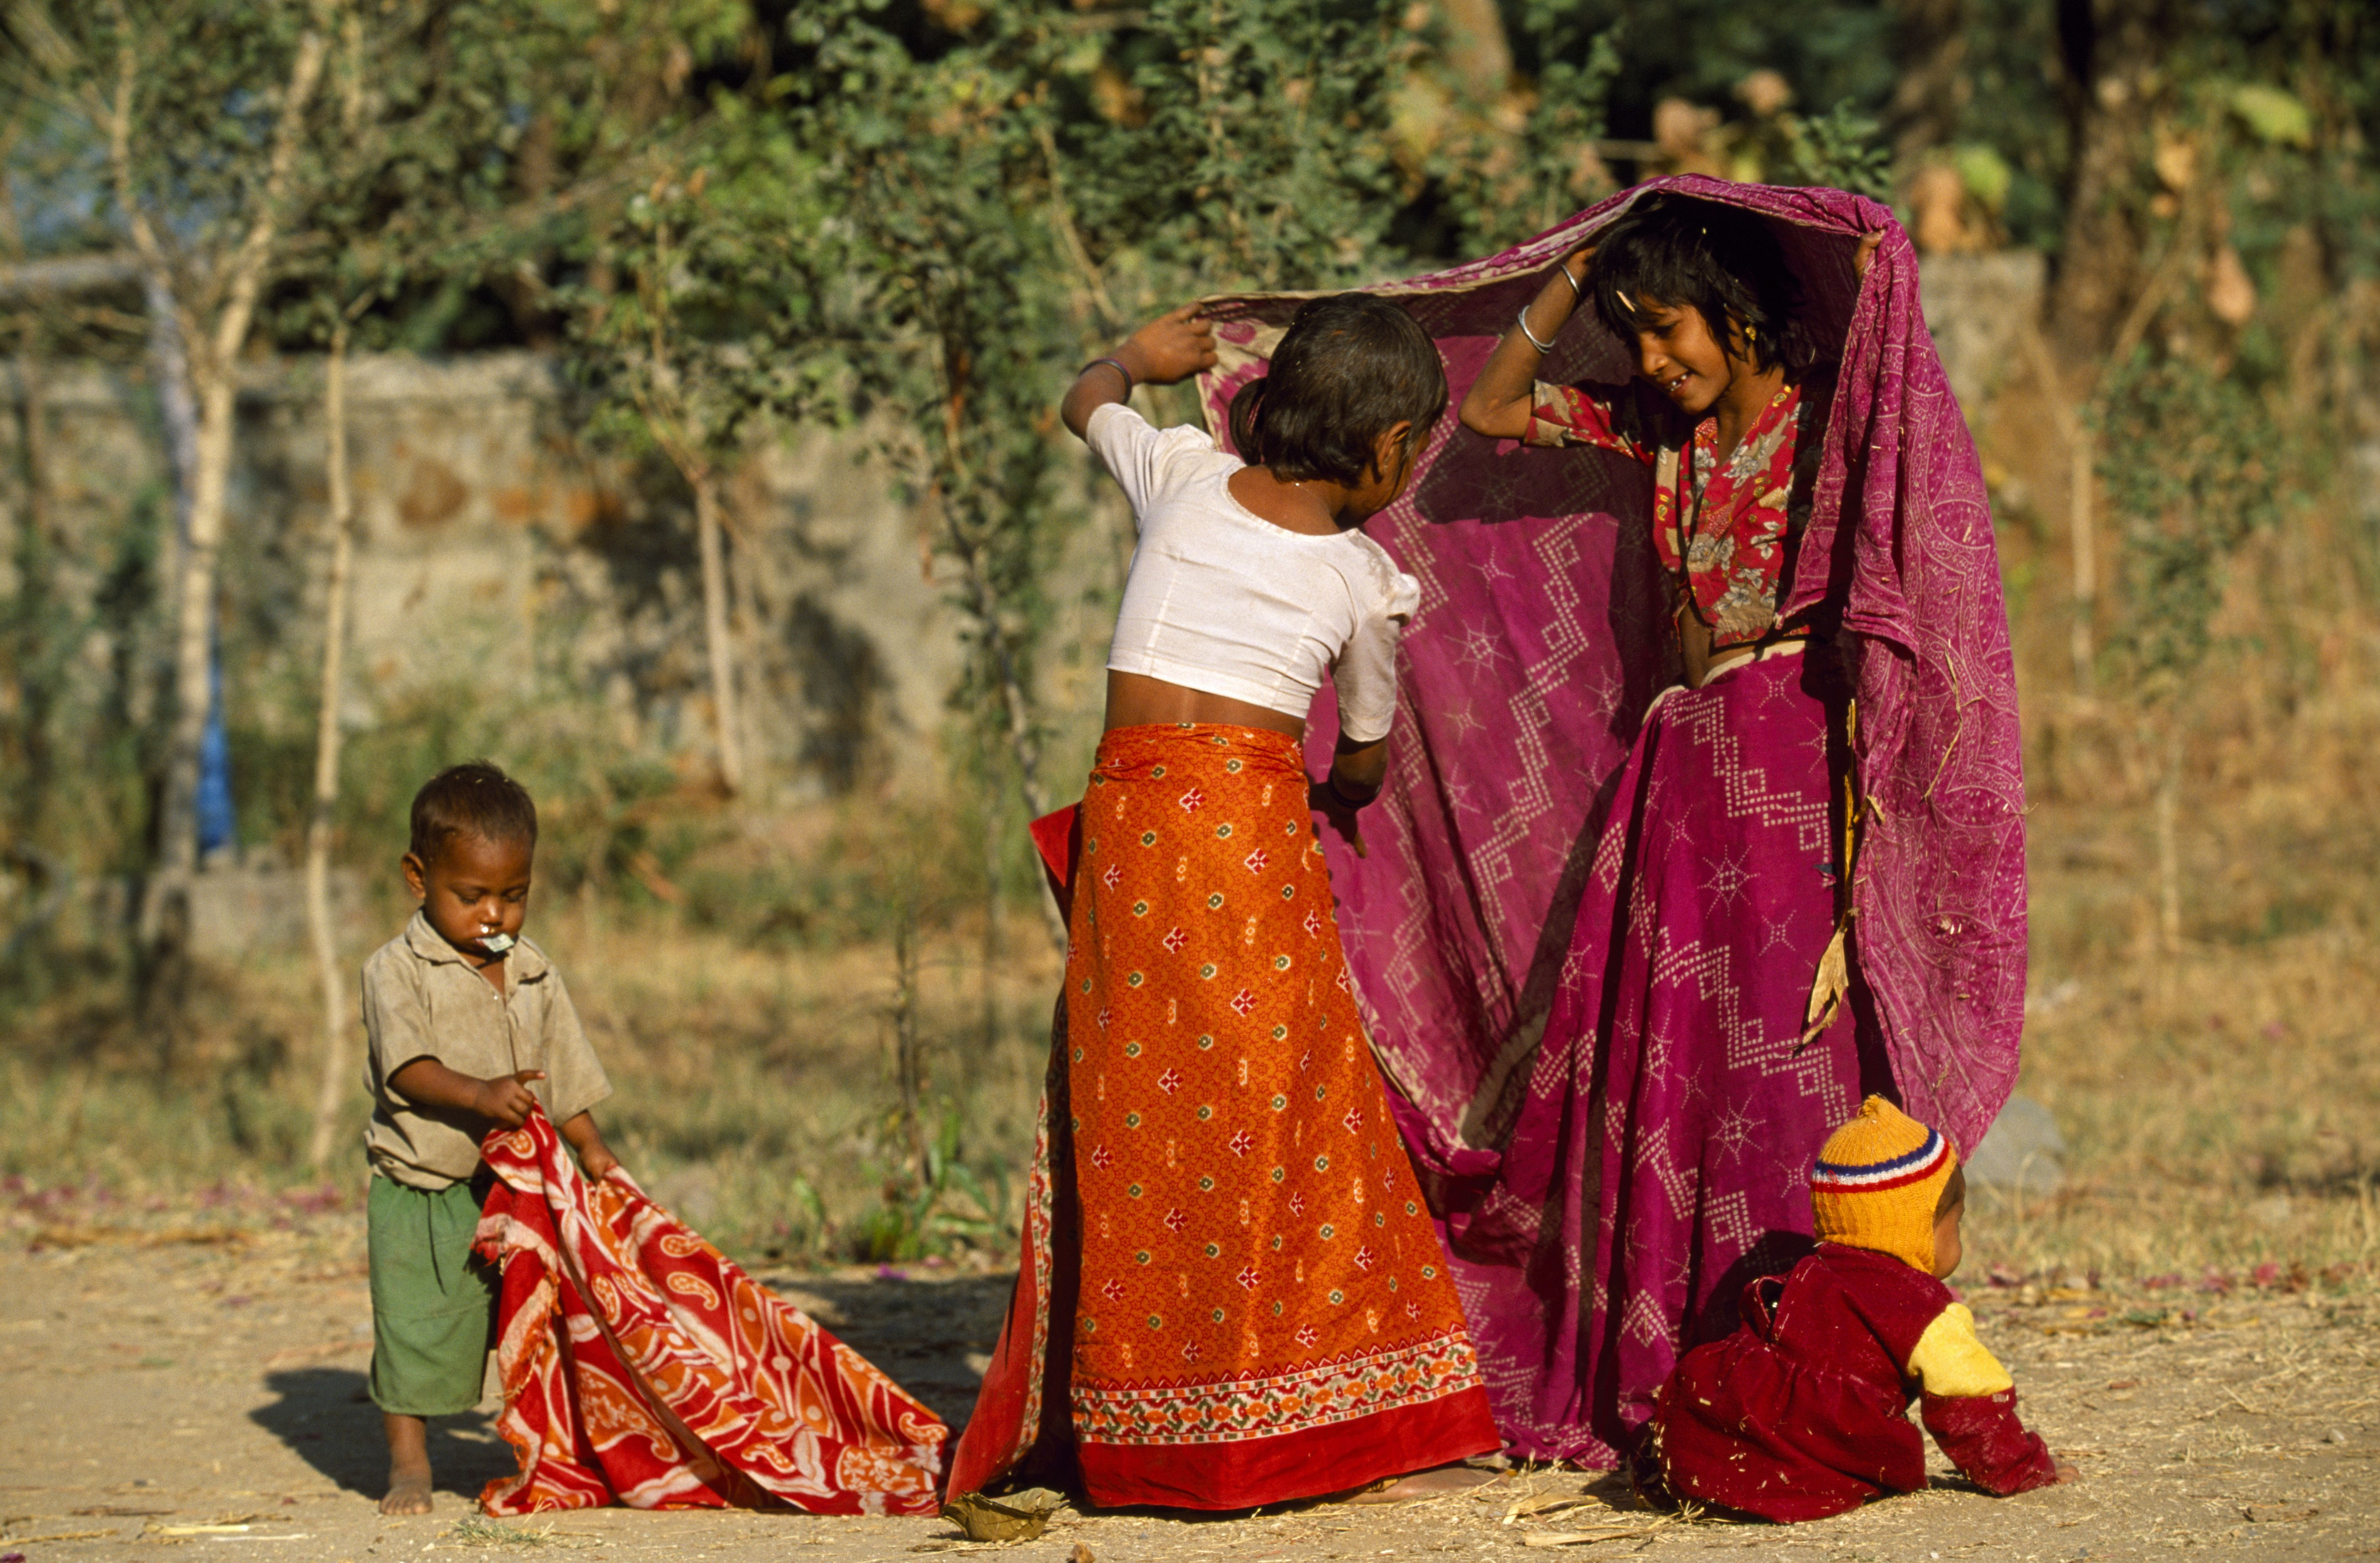 india rajasthan udaipur young rajasthani girls learning to tie saries near their rural home in kotra a village outside udaipur e223df78c d35c